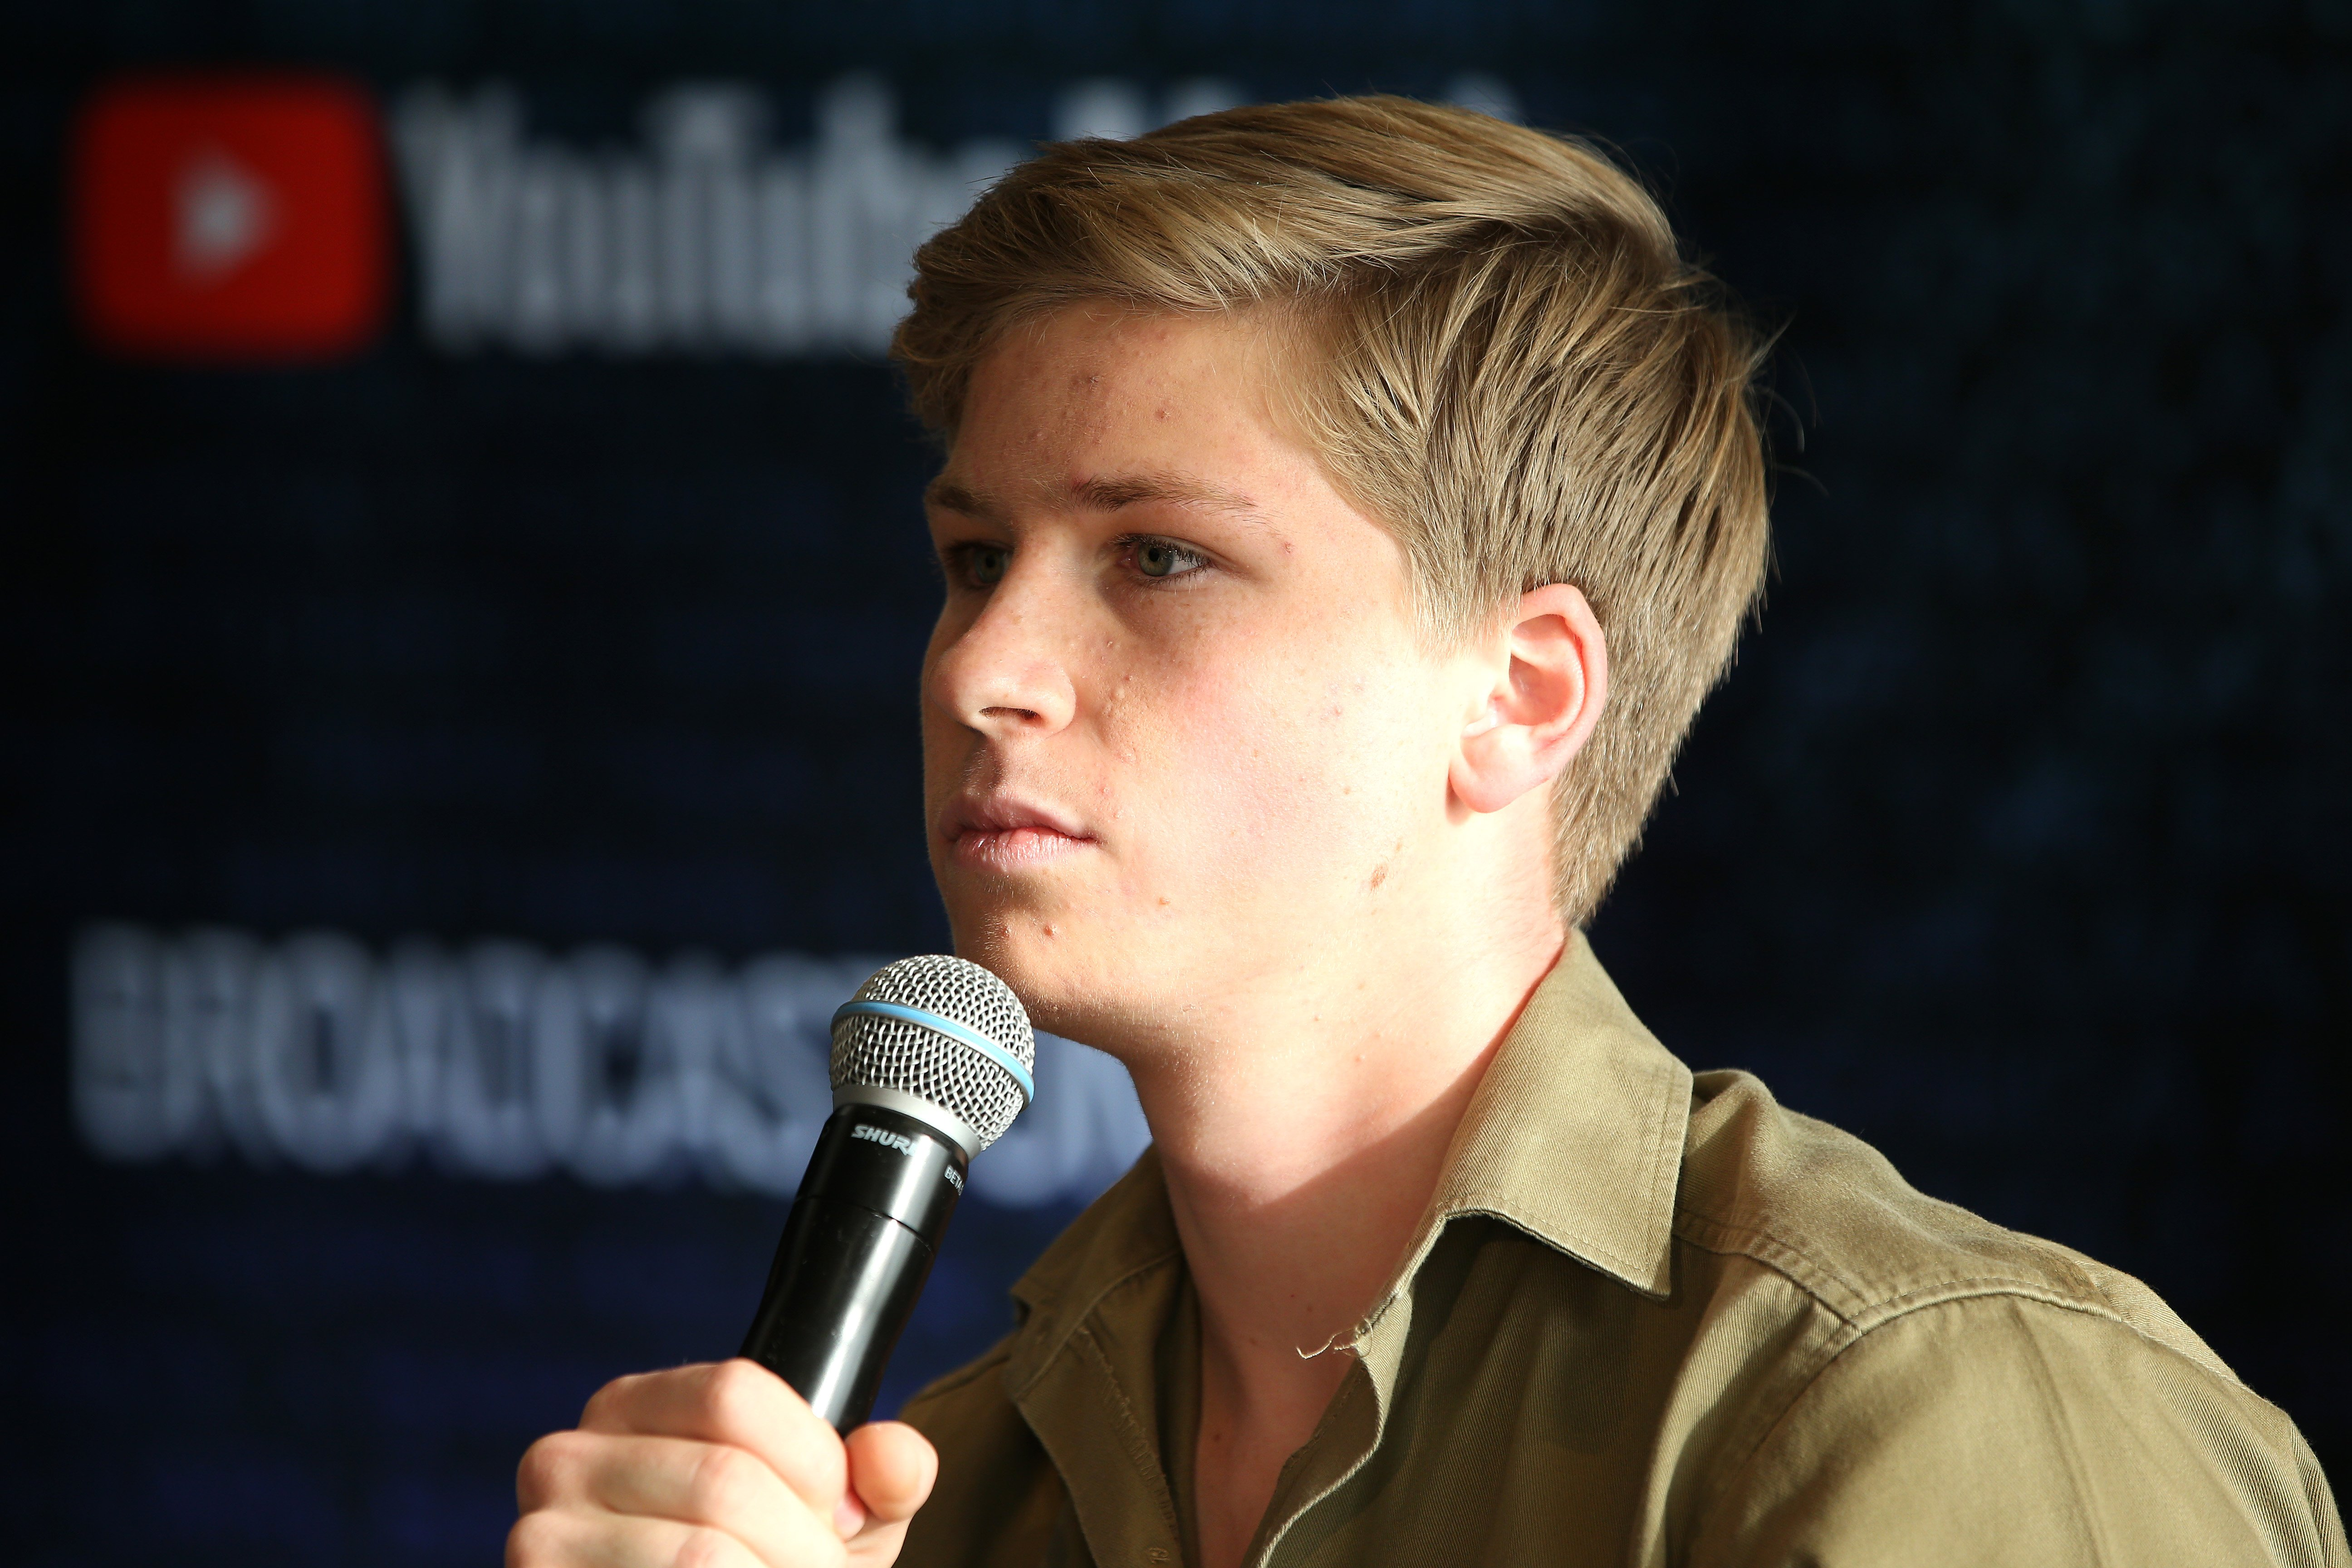 Robert Irwin talks to the media in the awards room during the 33rd Annual ARIA Awards 2019 | Photo: Getty Images